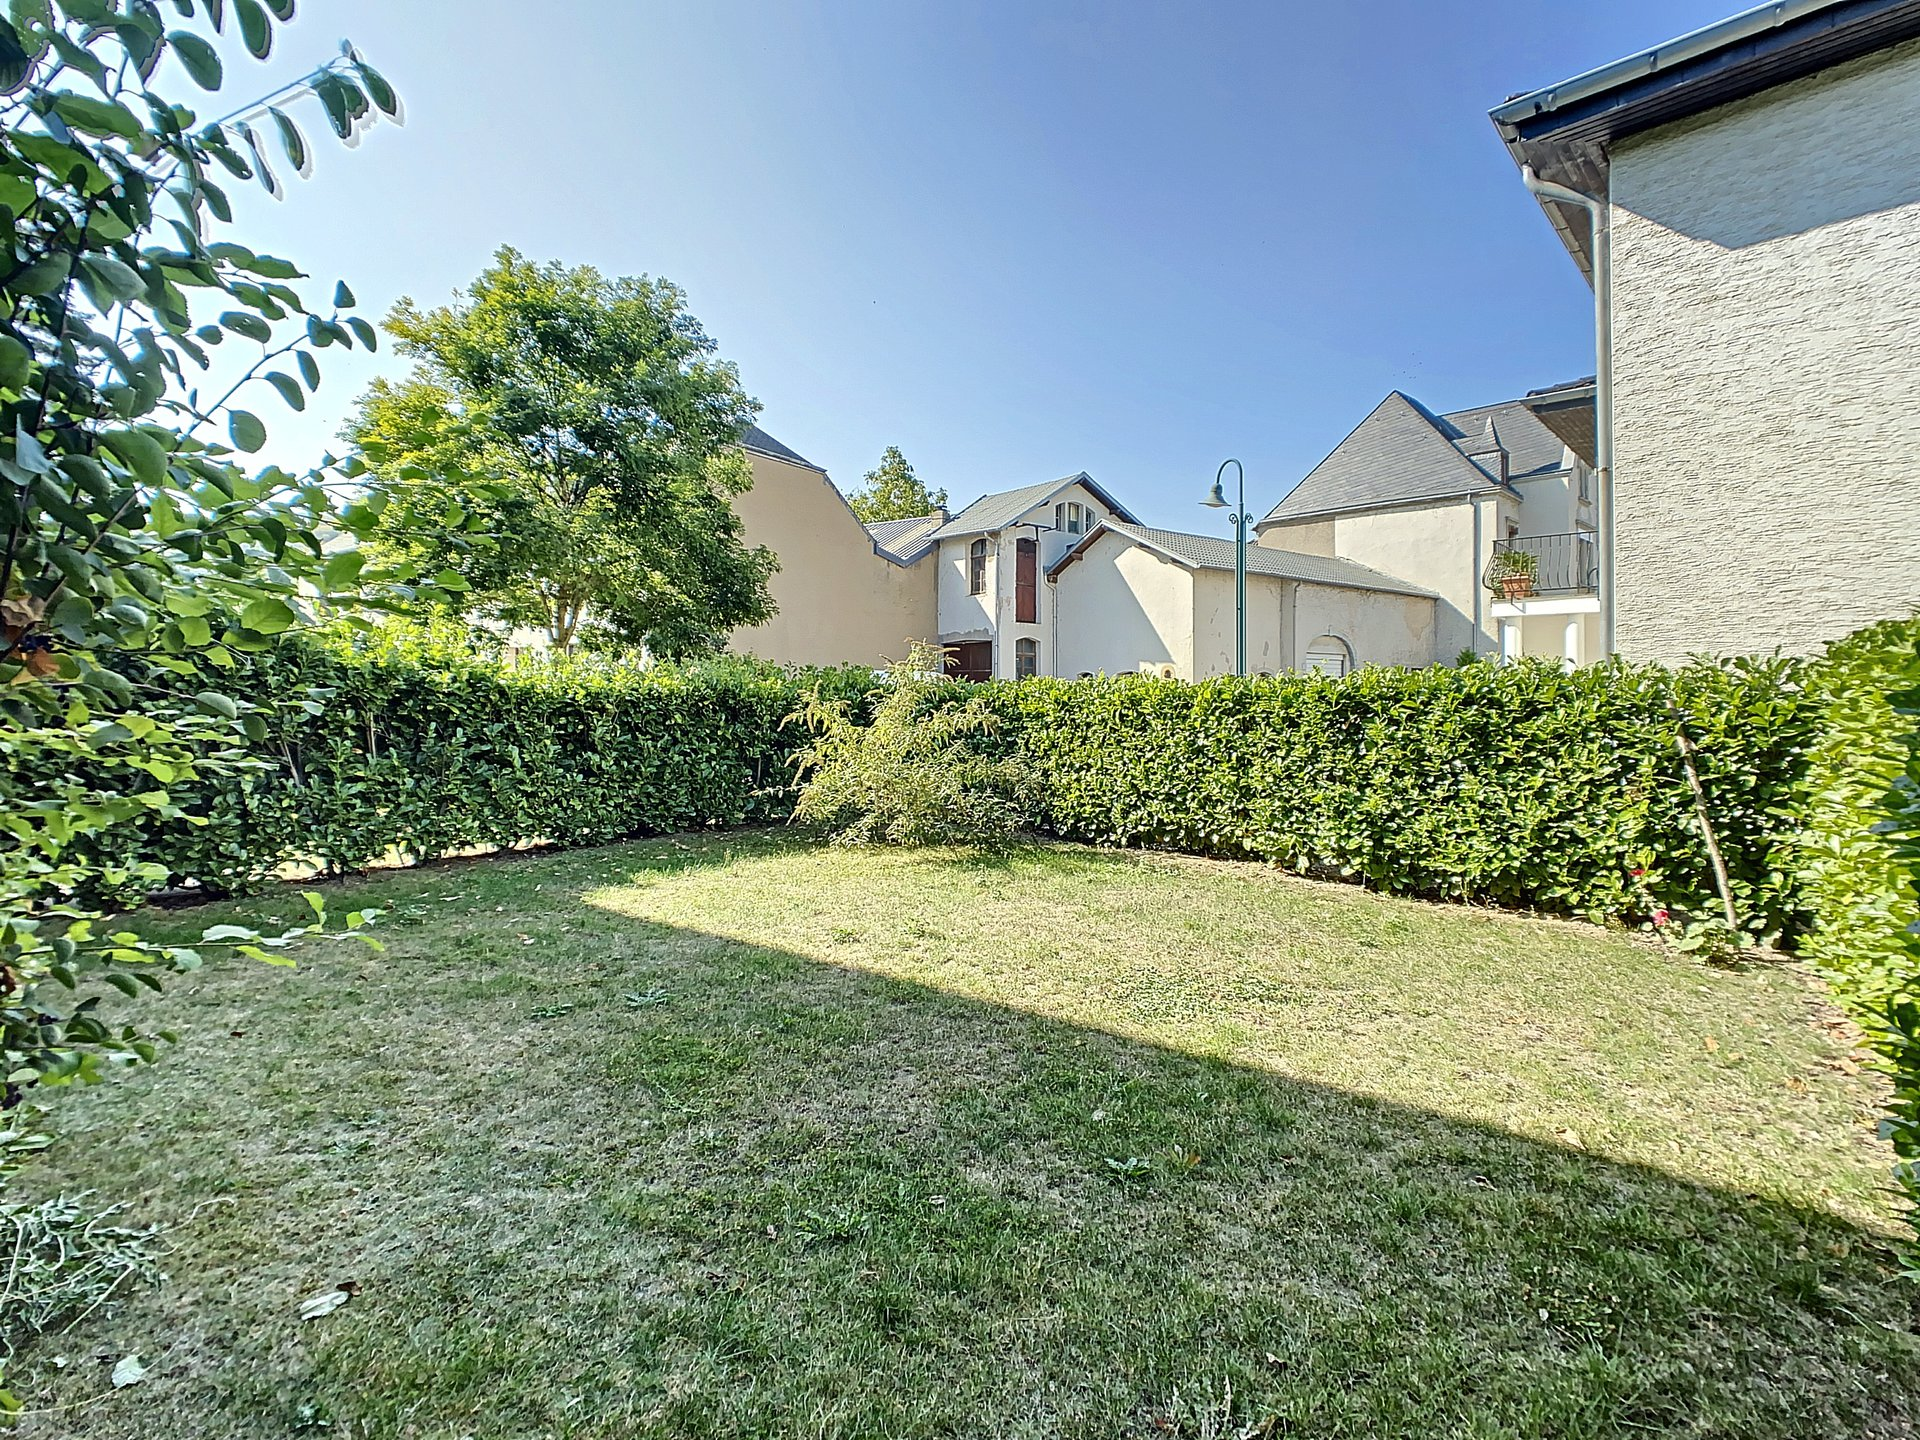 2-bedroom house for sale in Remerschen